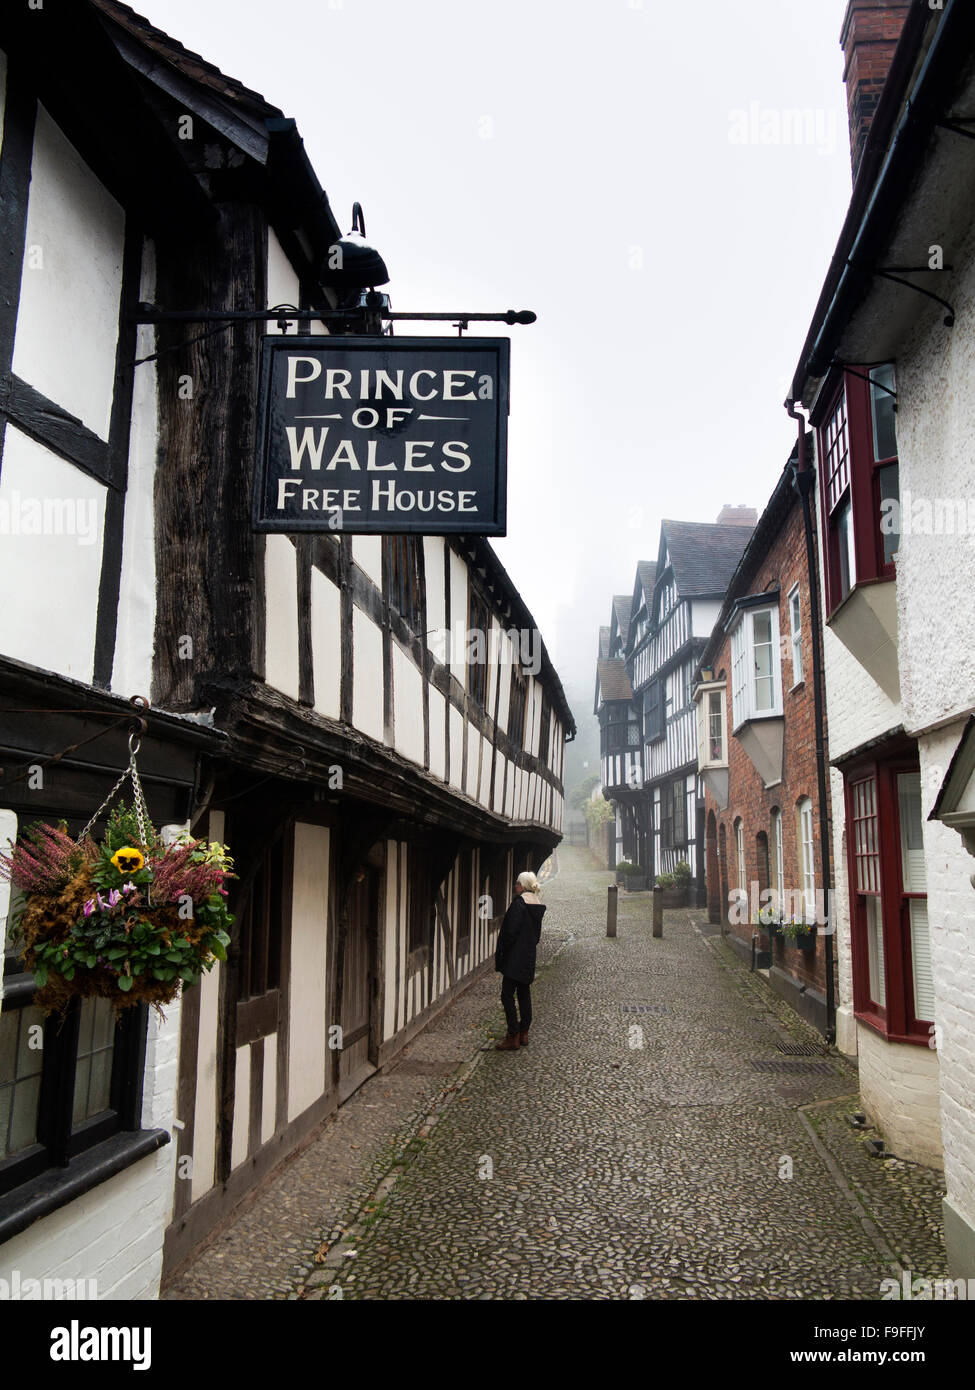 UK, Herefordshire, Ledbury, Church Lane, timber framed Prince of Wales Free House pub on cobbled lane - Stock Image